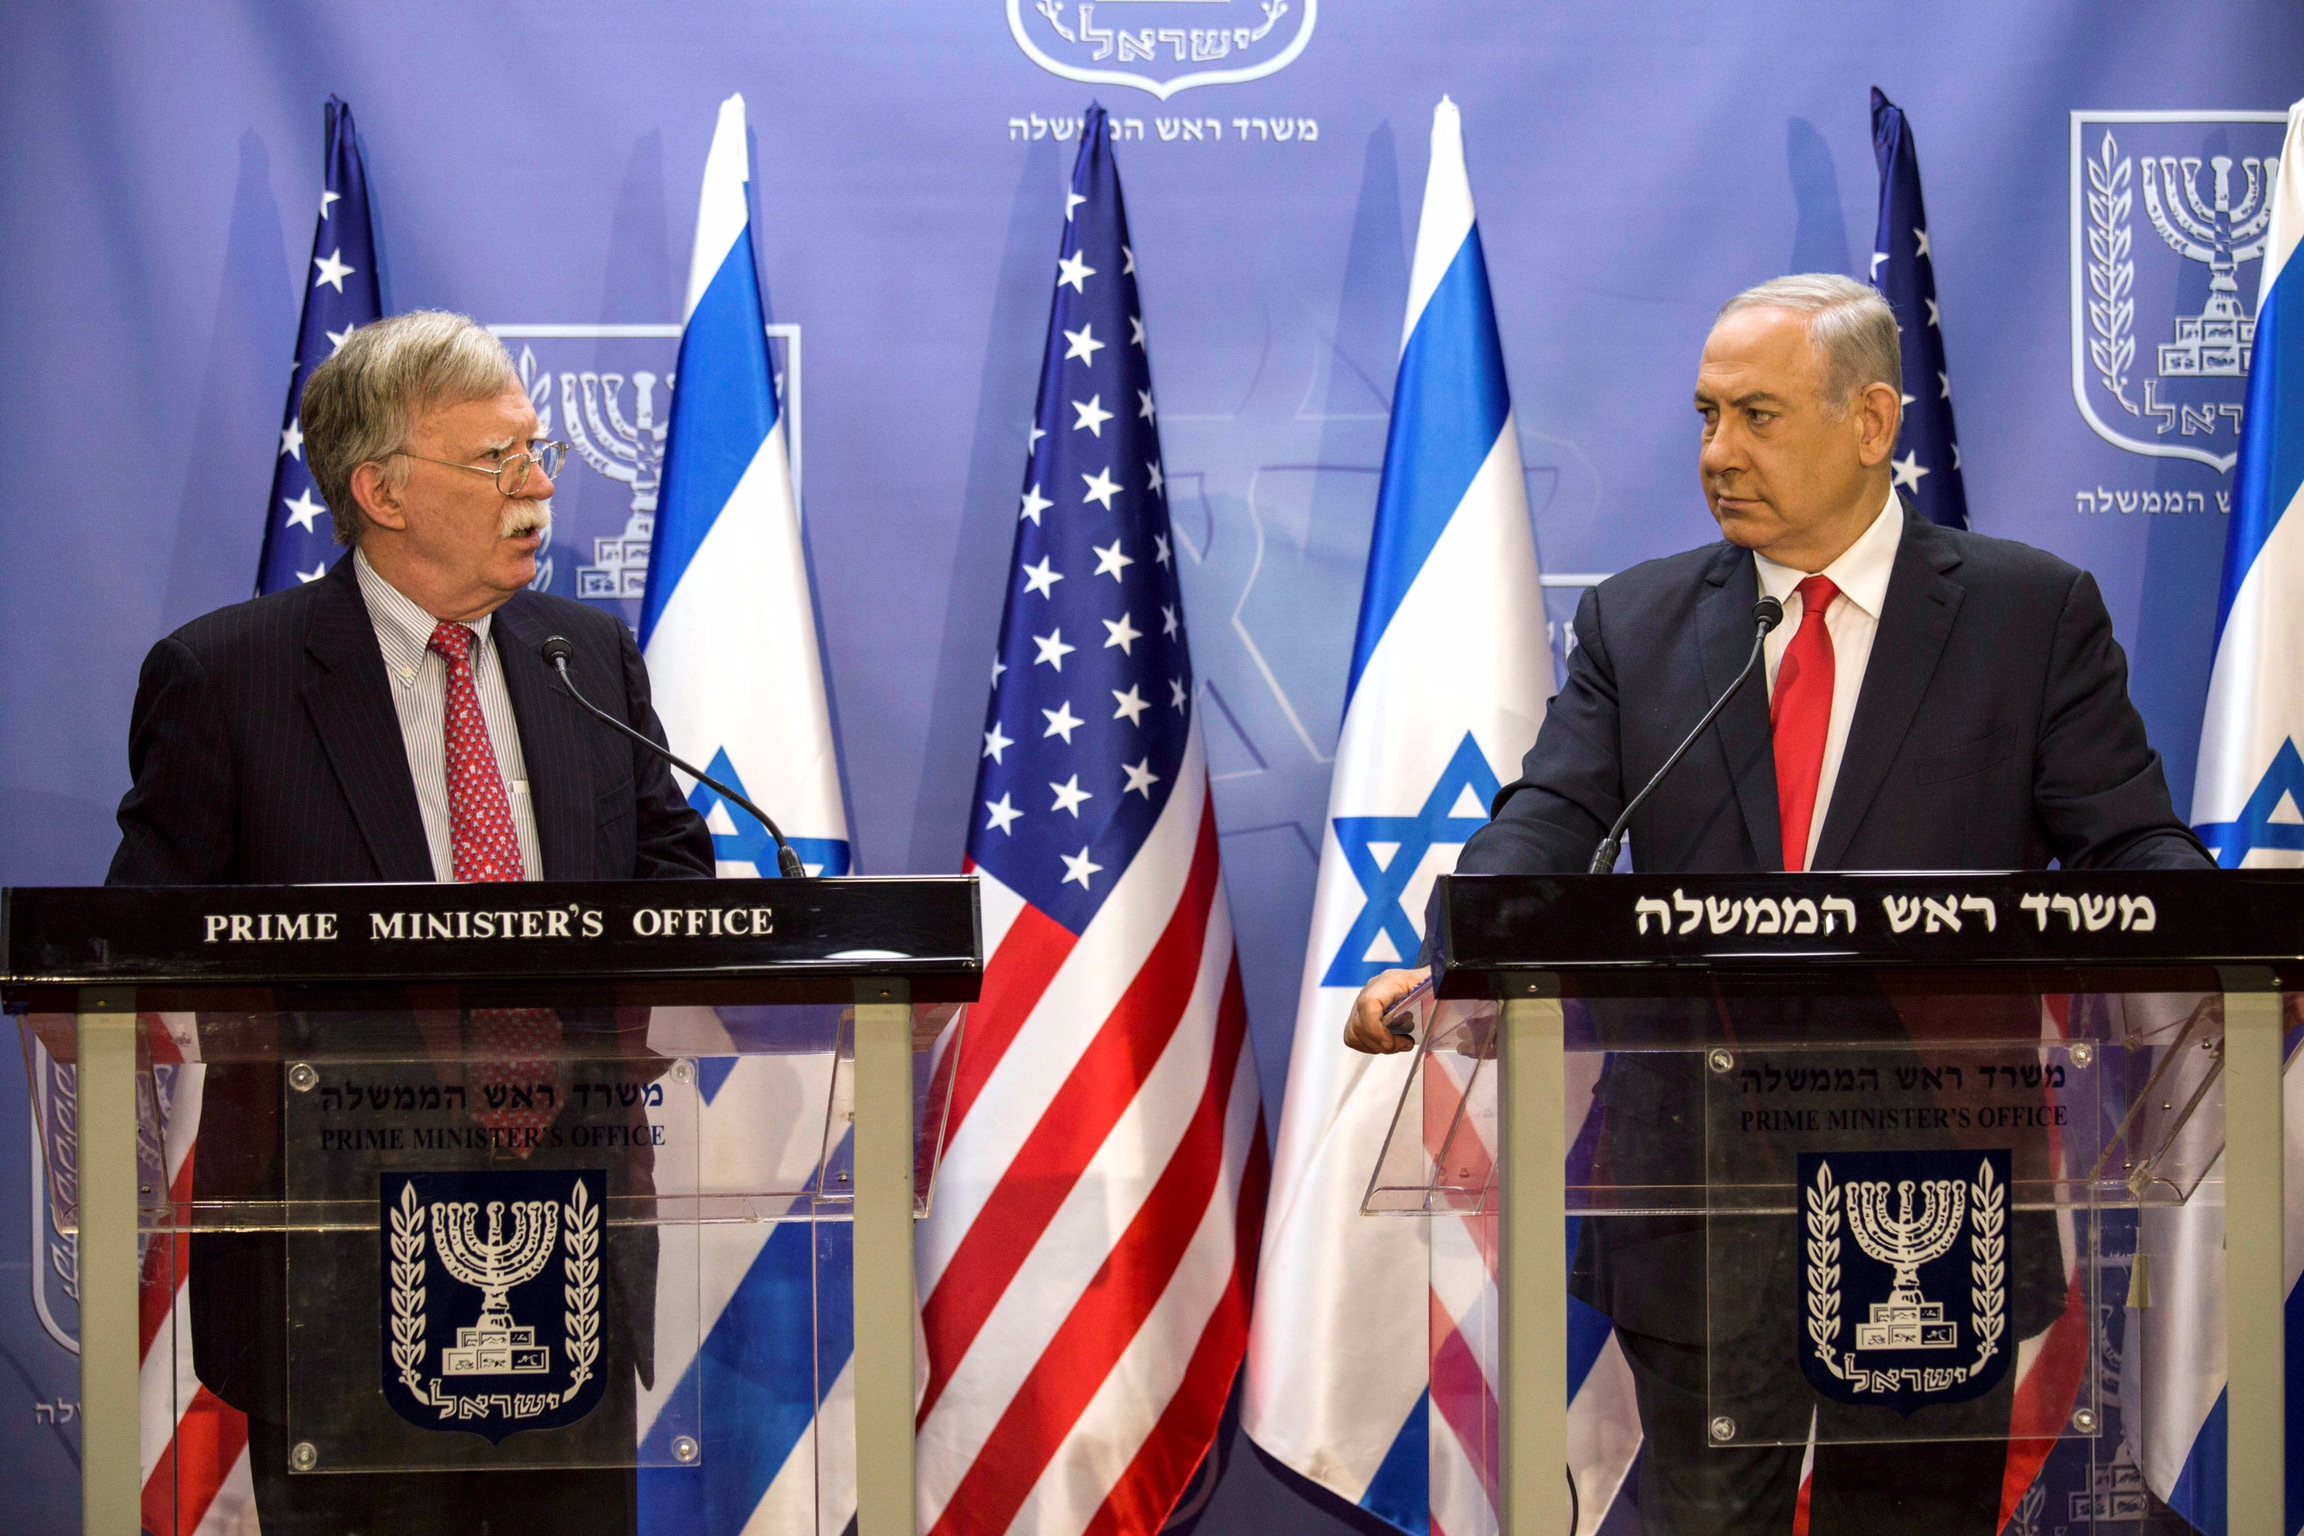 Israeli Prime Minister Benjamin Netanyahu and U.S. National Security Advisor John Bolton deliver joint statements in Jerusalem June 23, 2019. Tsafrir Abayov/Pool via REUTERS